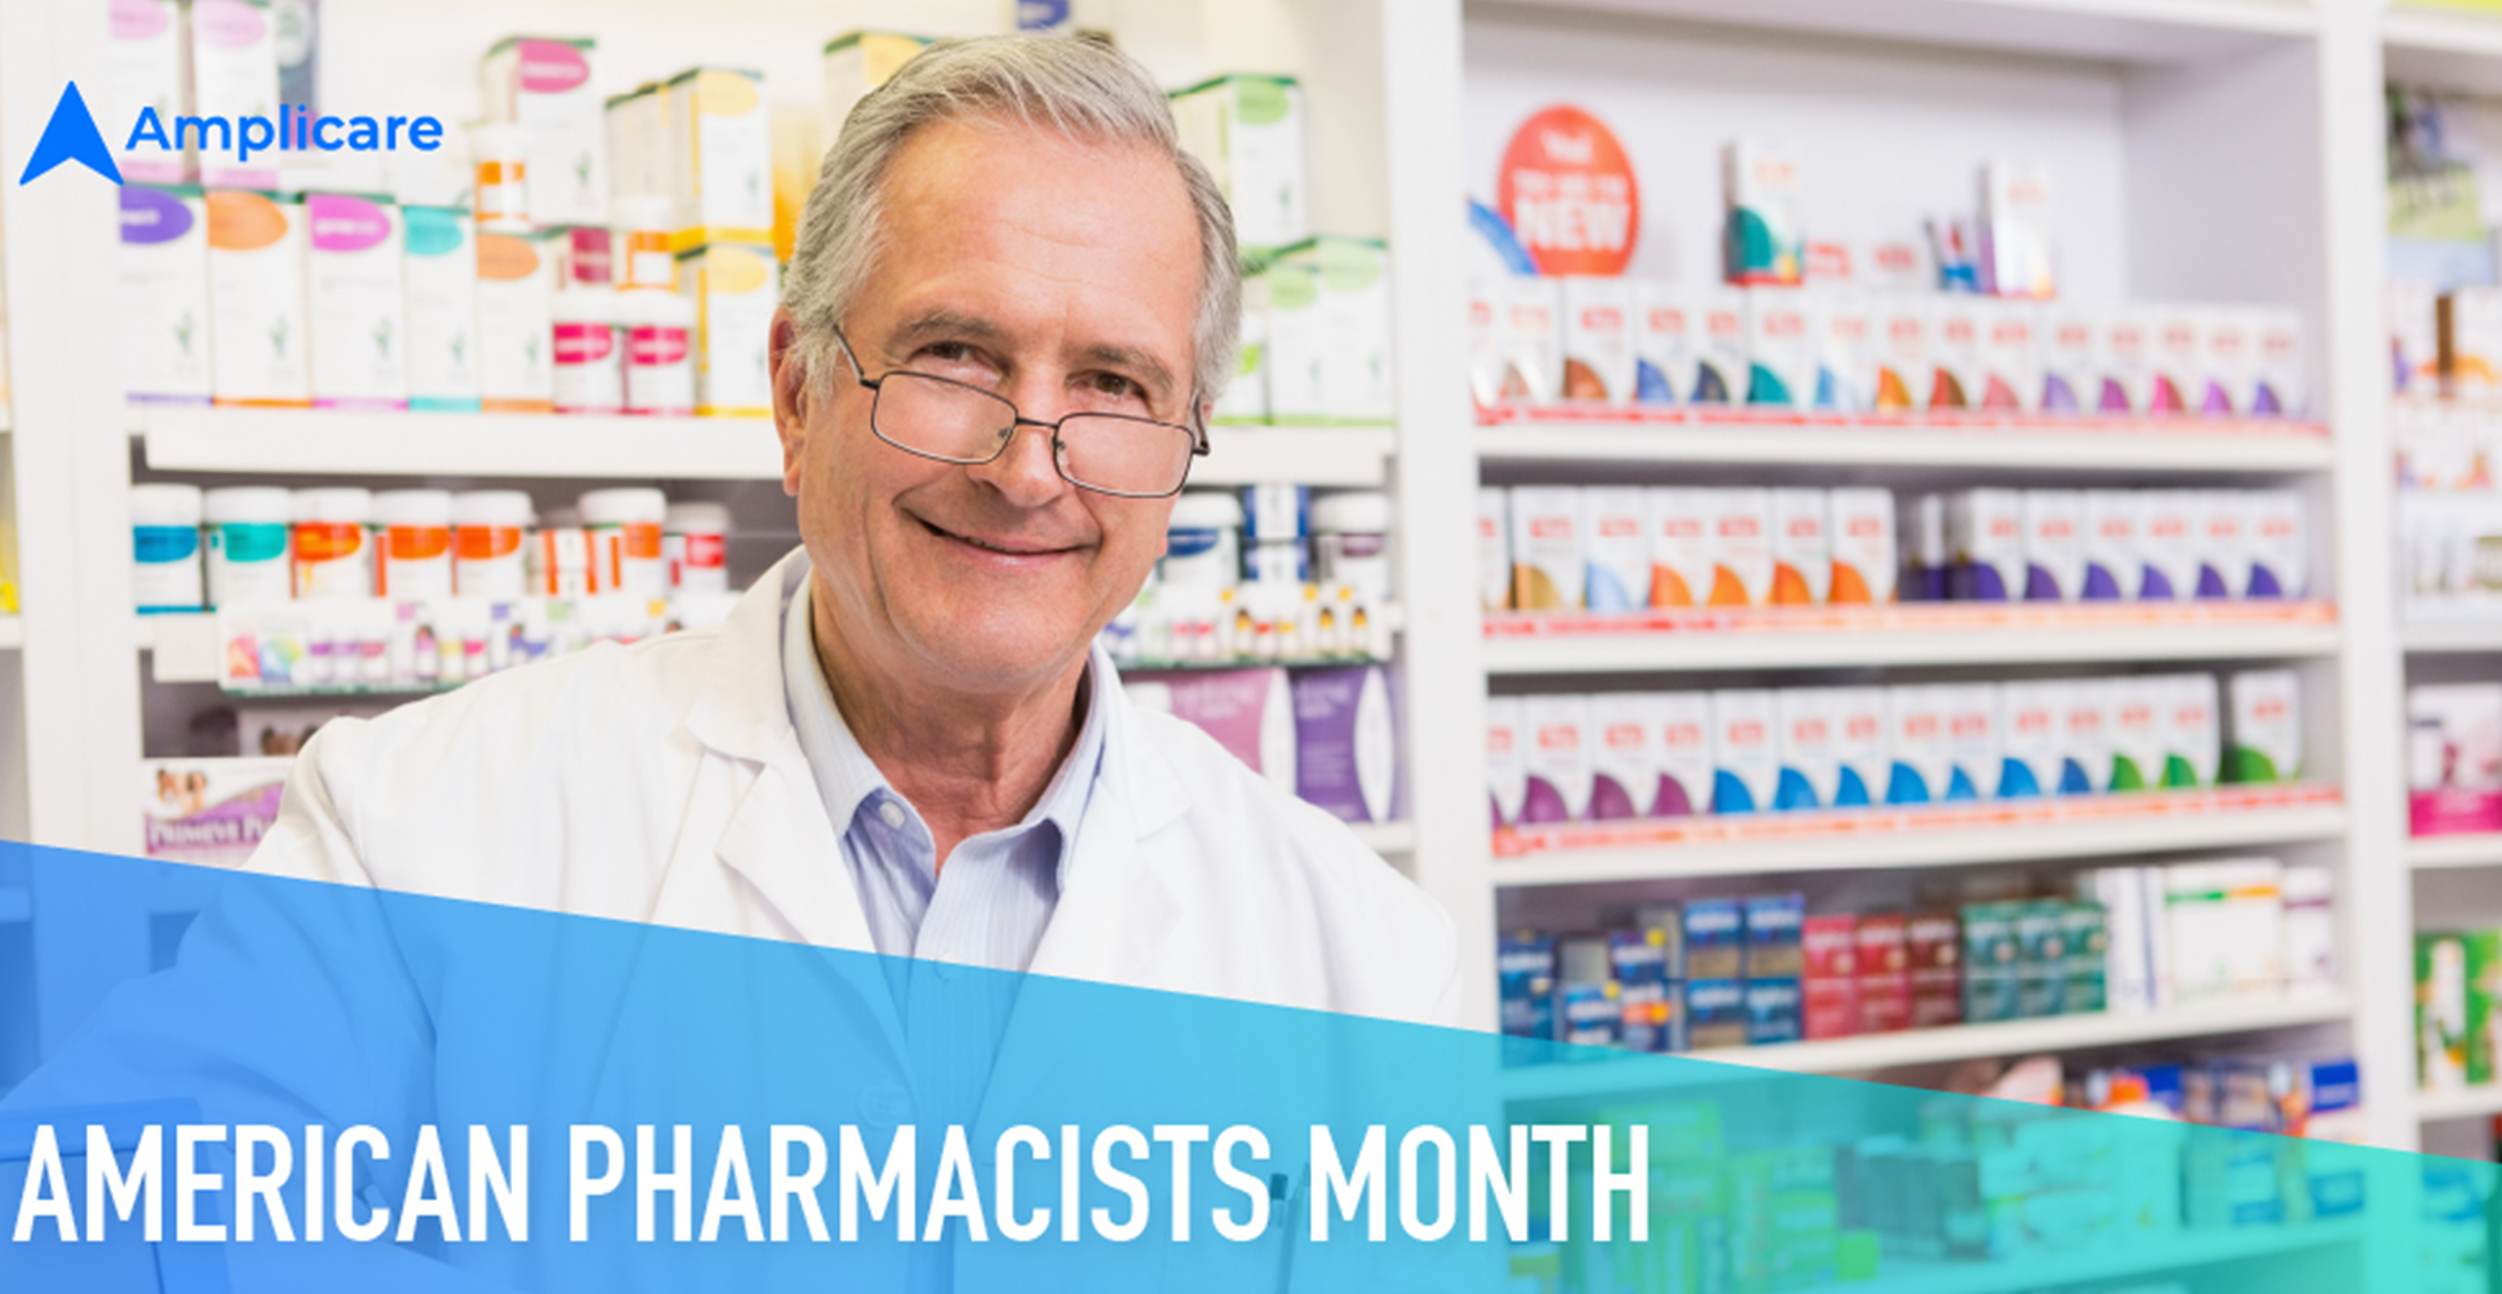 Celebrating Pharmacists During American Pharmacists Month